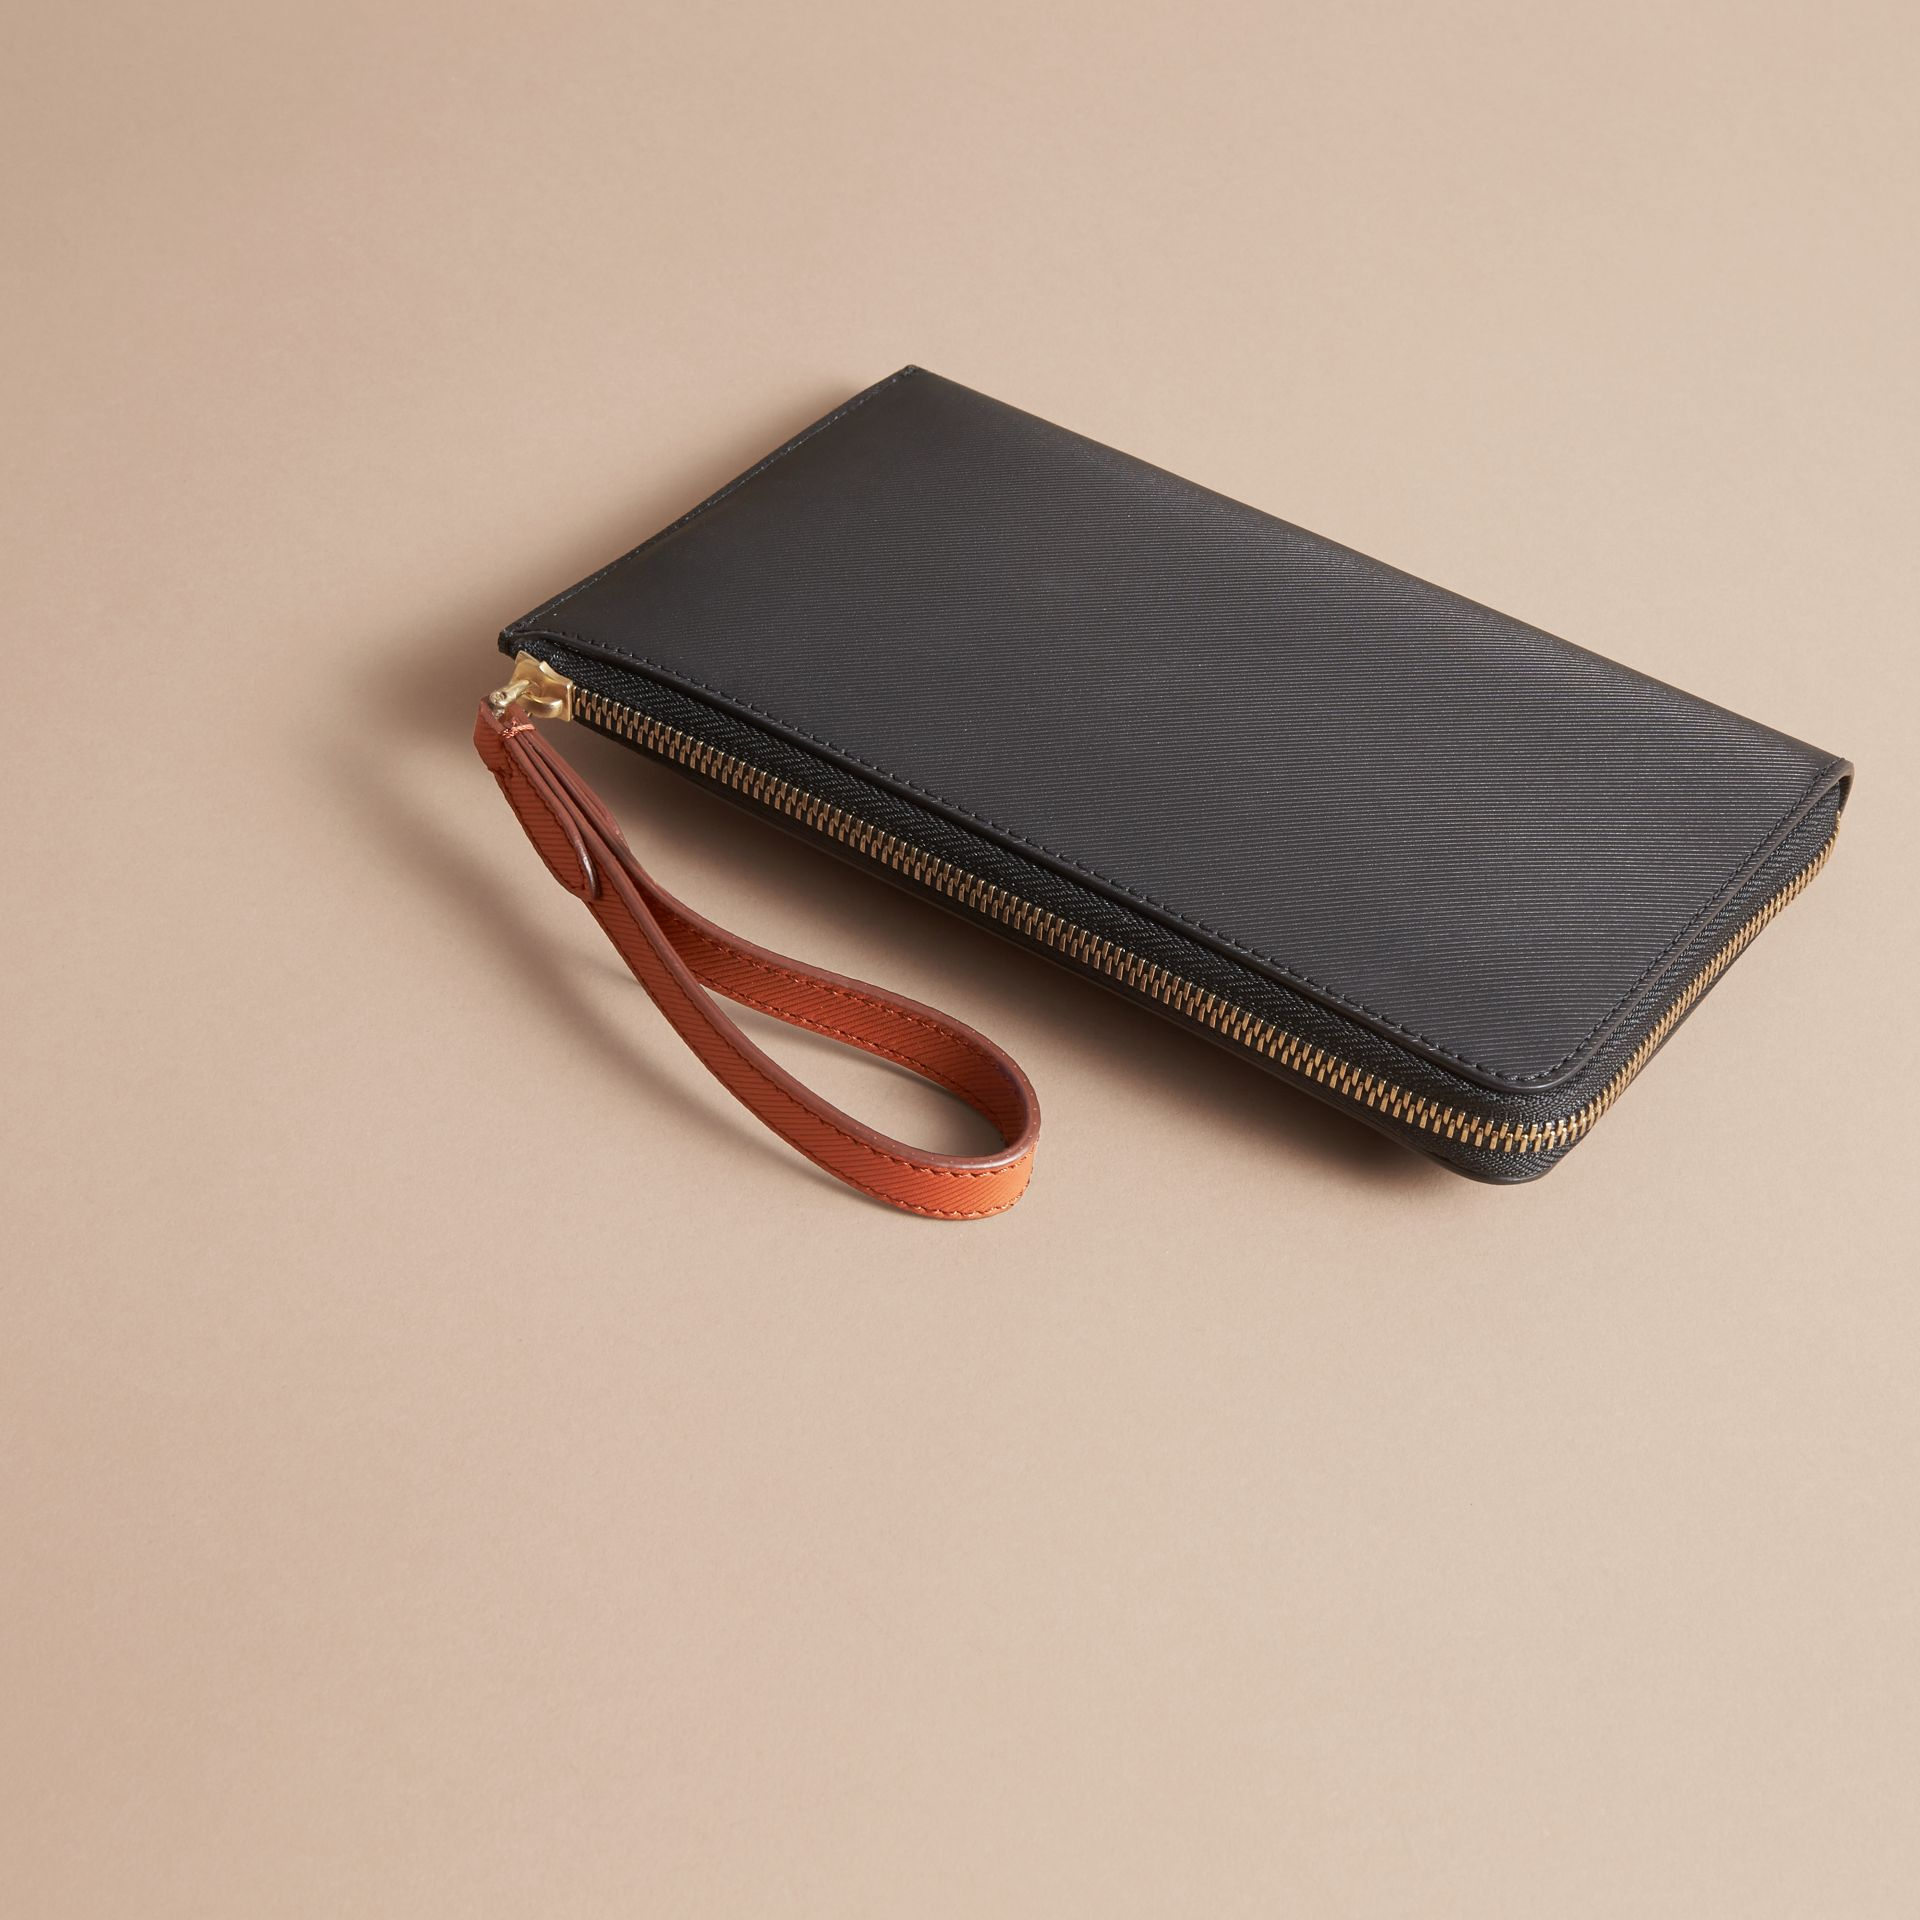 Two-tone Trench Leather Travel Wallet Black - gallery image 3